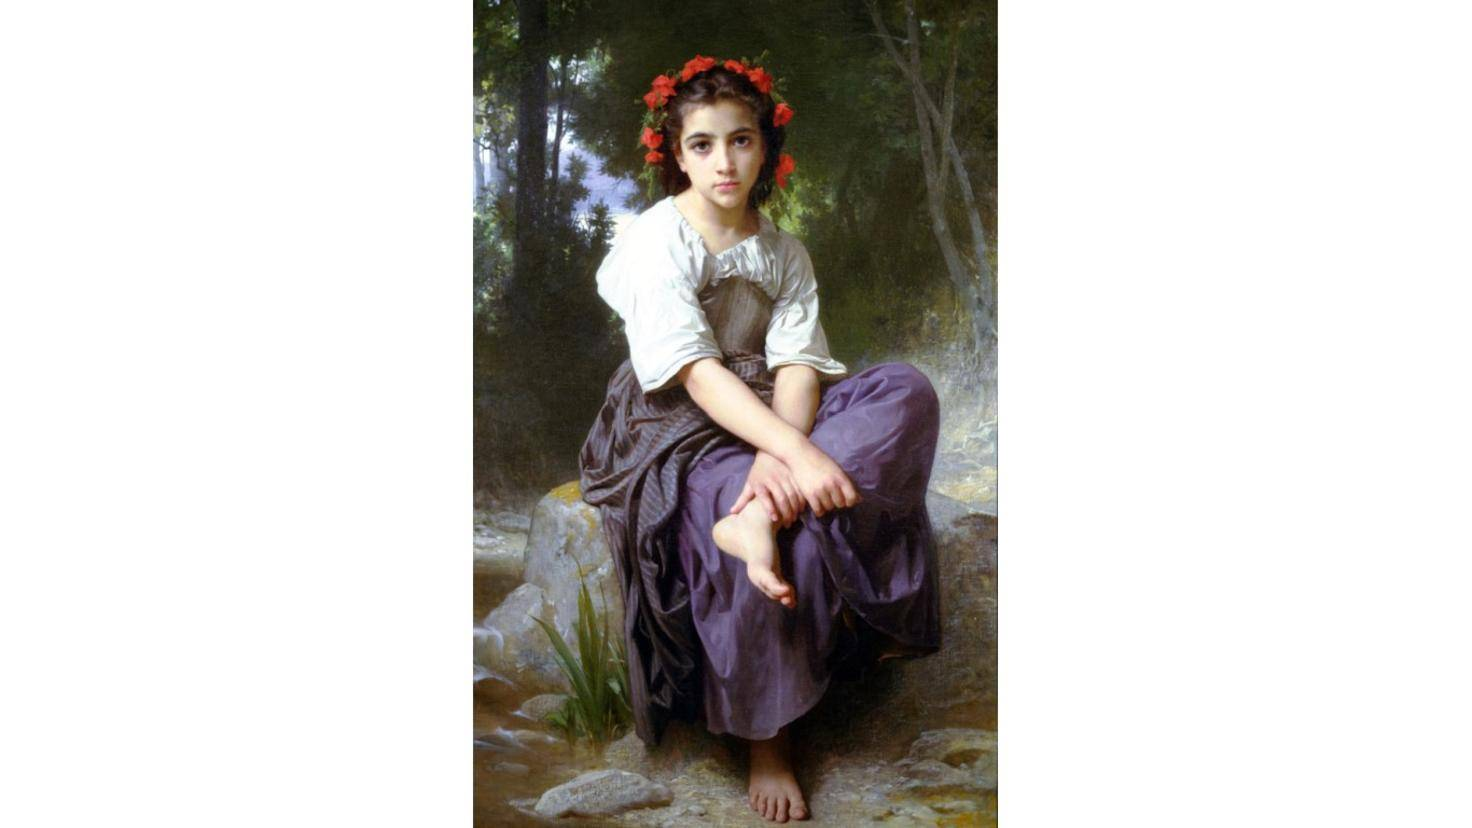 William Adolphe Bouguereau Au Bord du Ruisseau